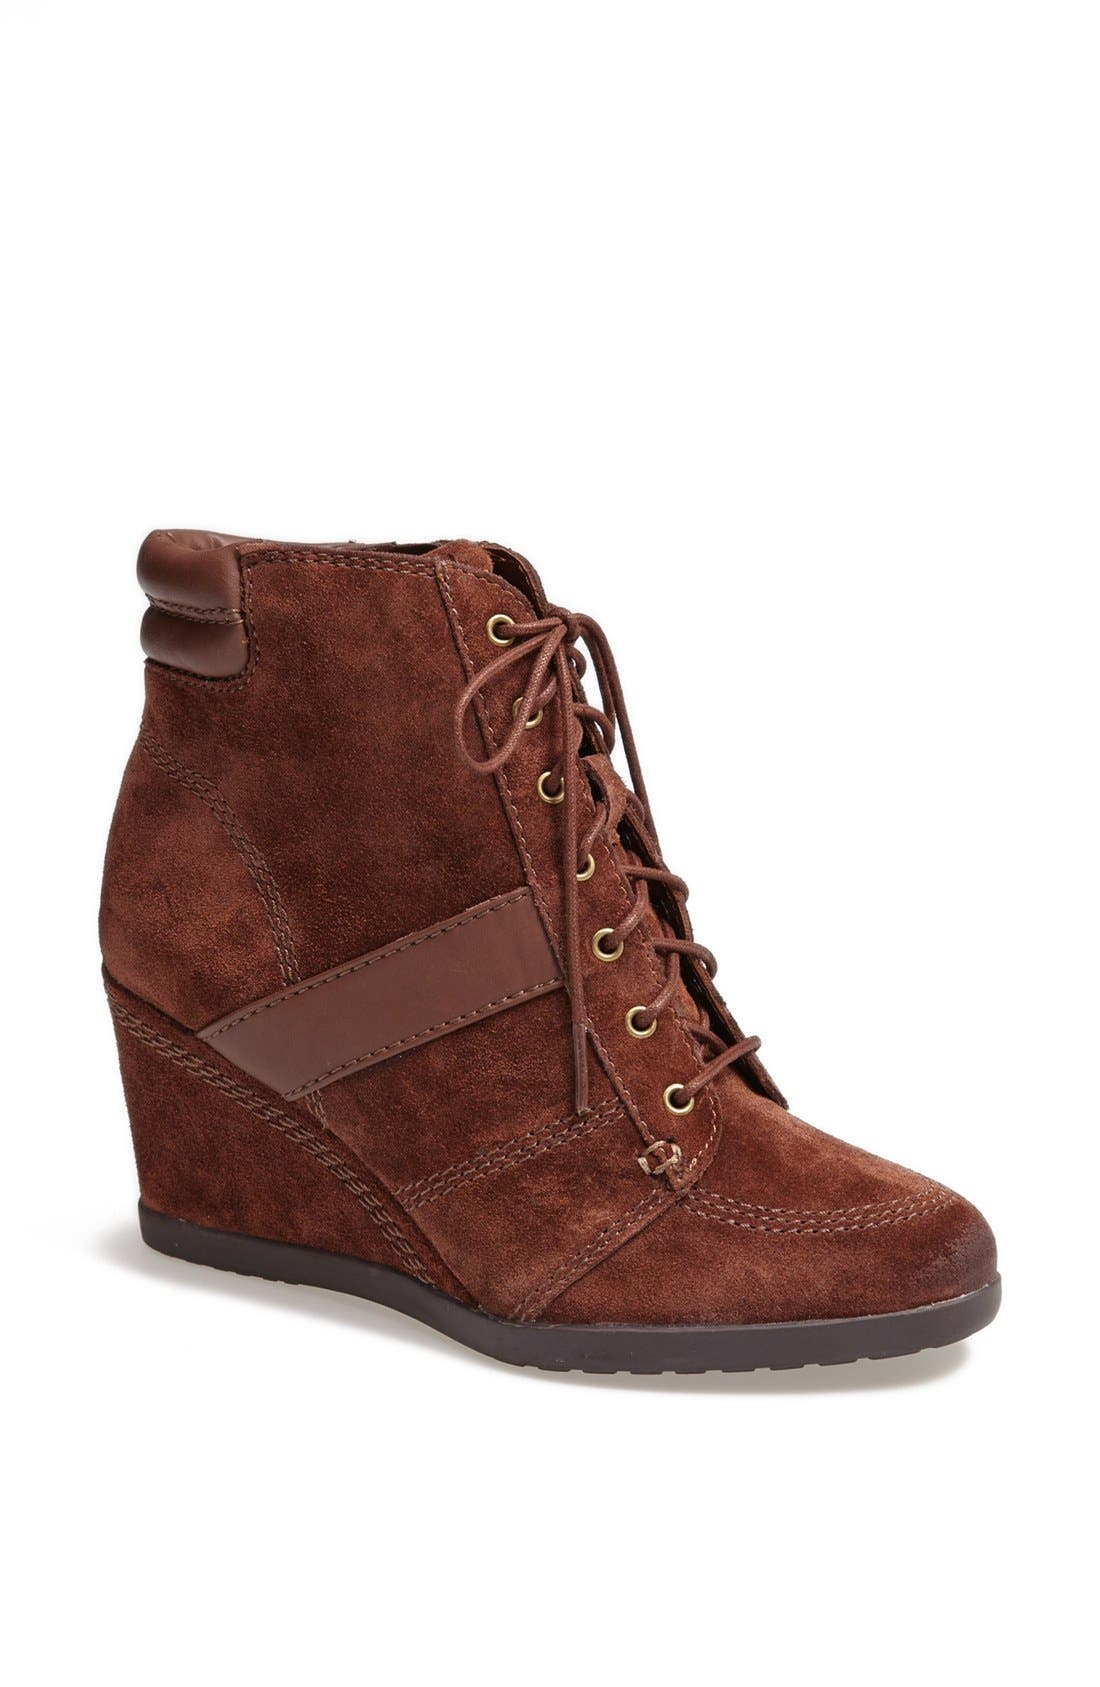 Alternate Image 1 Selected - Naturalizer 'Paitlyn' Suede Wedge Bootie